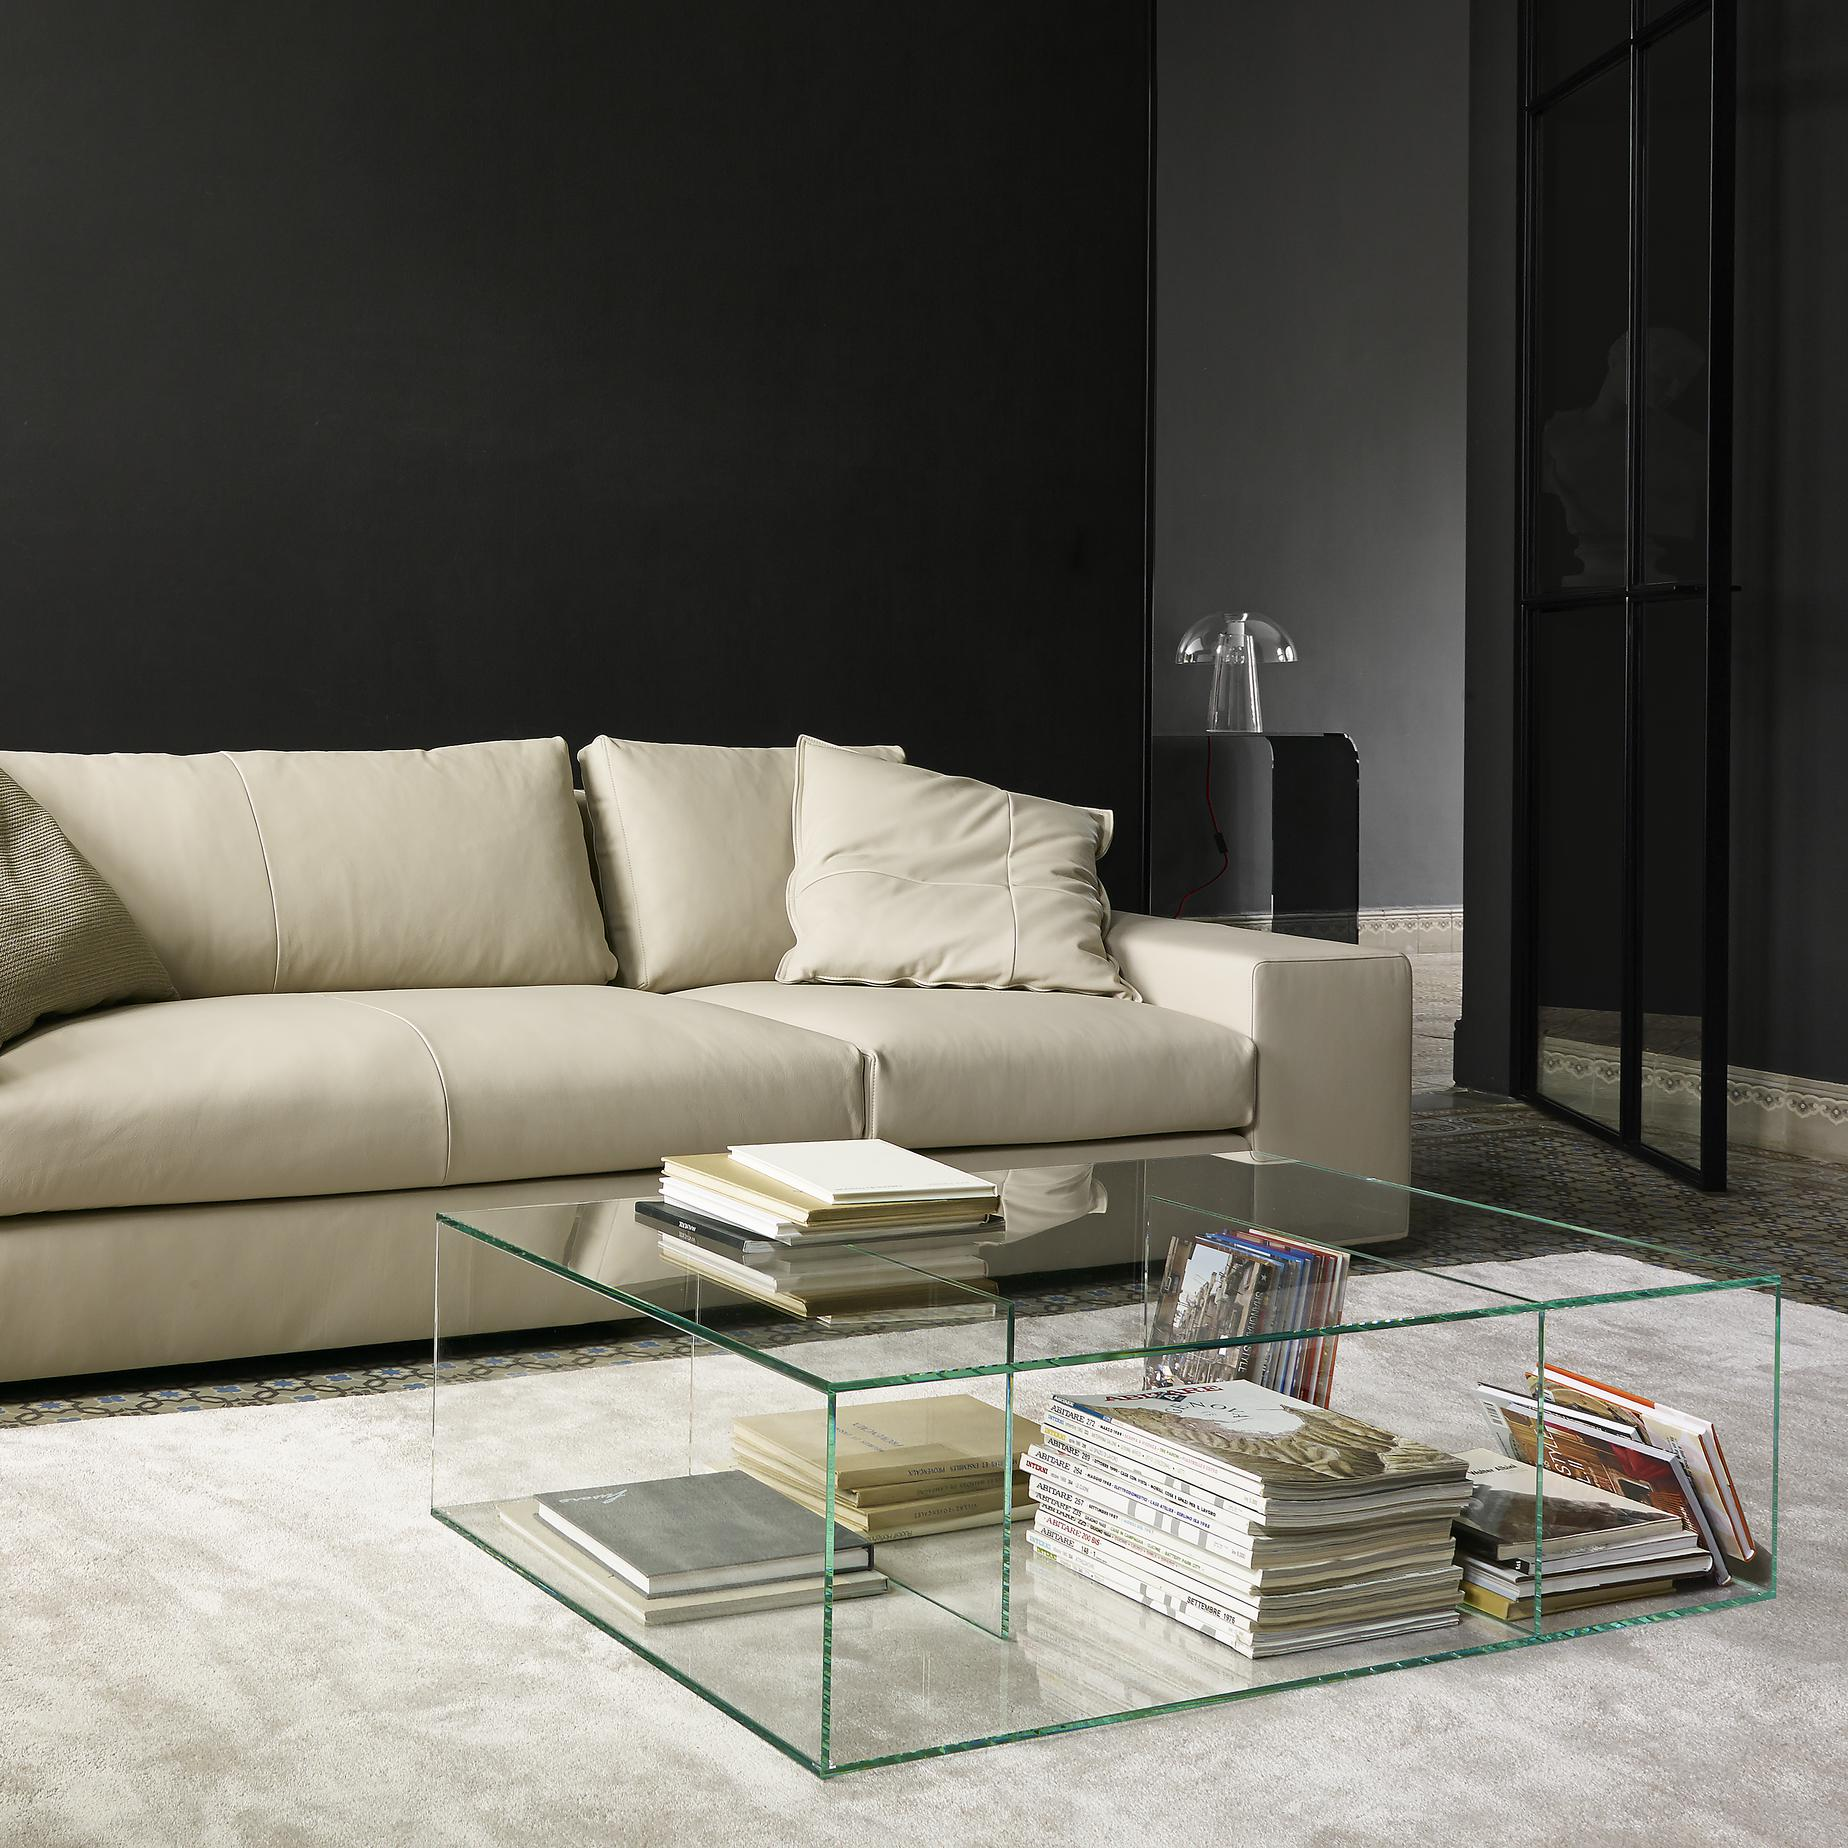 Couchtisch Glas Ligne Roset Saldo Occasional Tables From Designer Nick Rennie Ligne